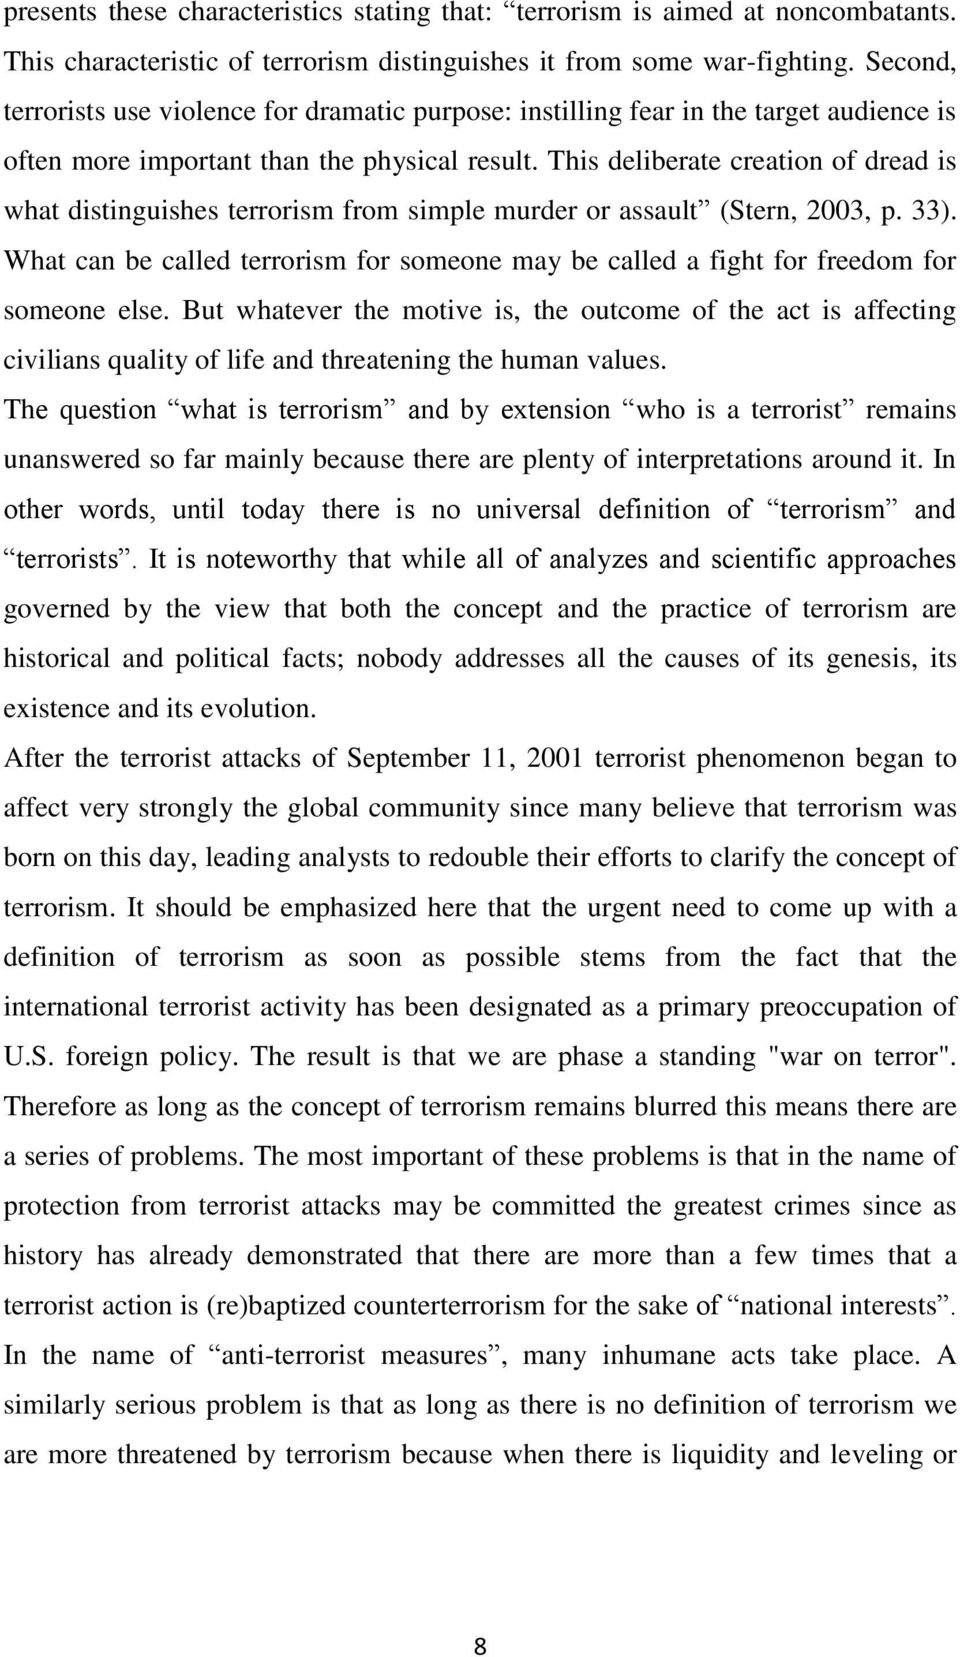 This deliberate creation of dread is what distinguishes terrorism from simple murder or assault (Stern, 2003, p. 33).